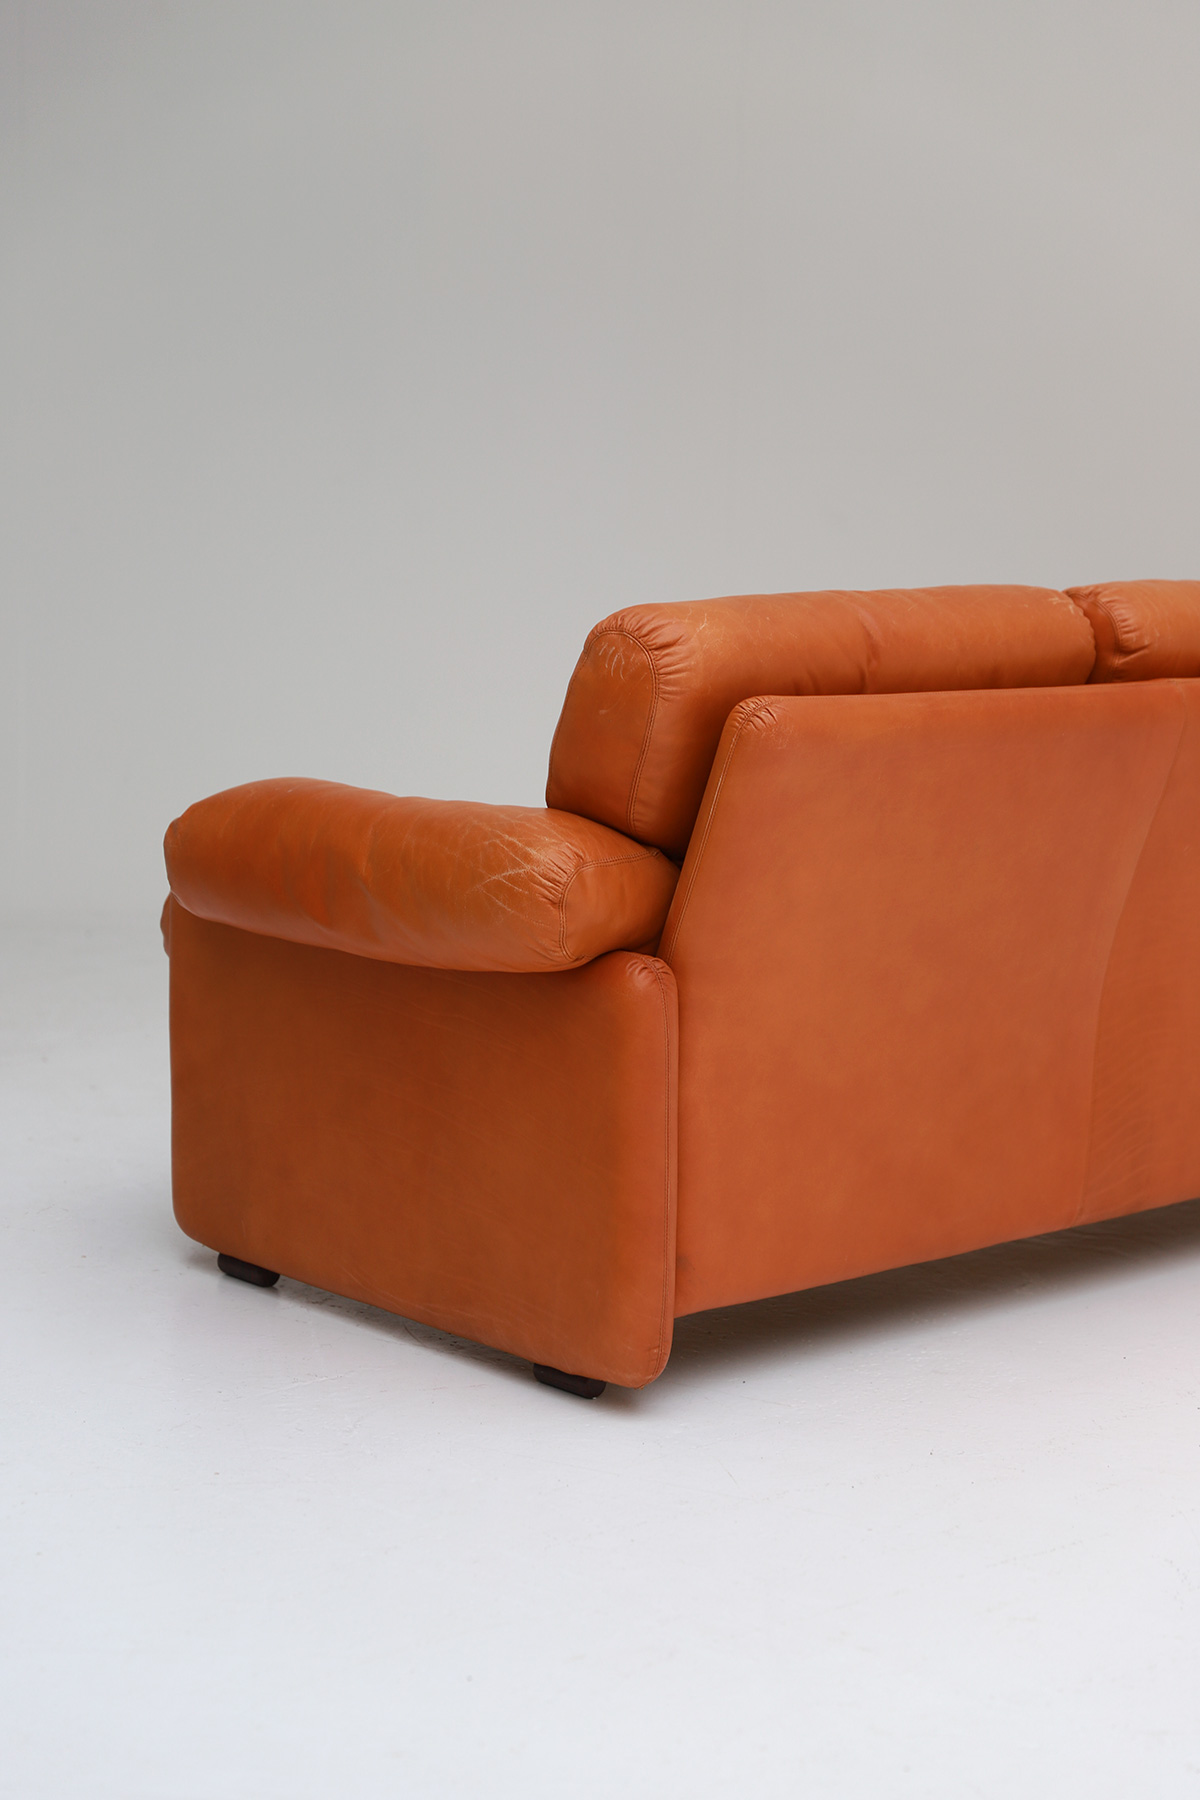 Tobia Scarpa 4 seat Cognac Leather Sofa B&B Italiaimage 7